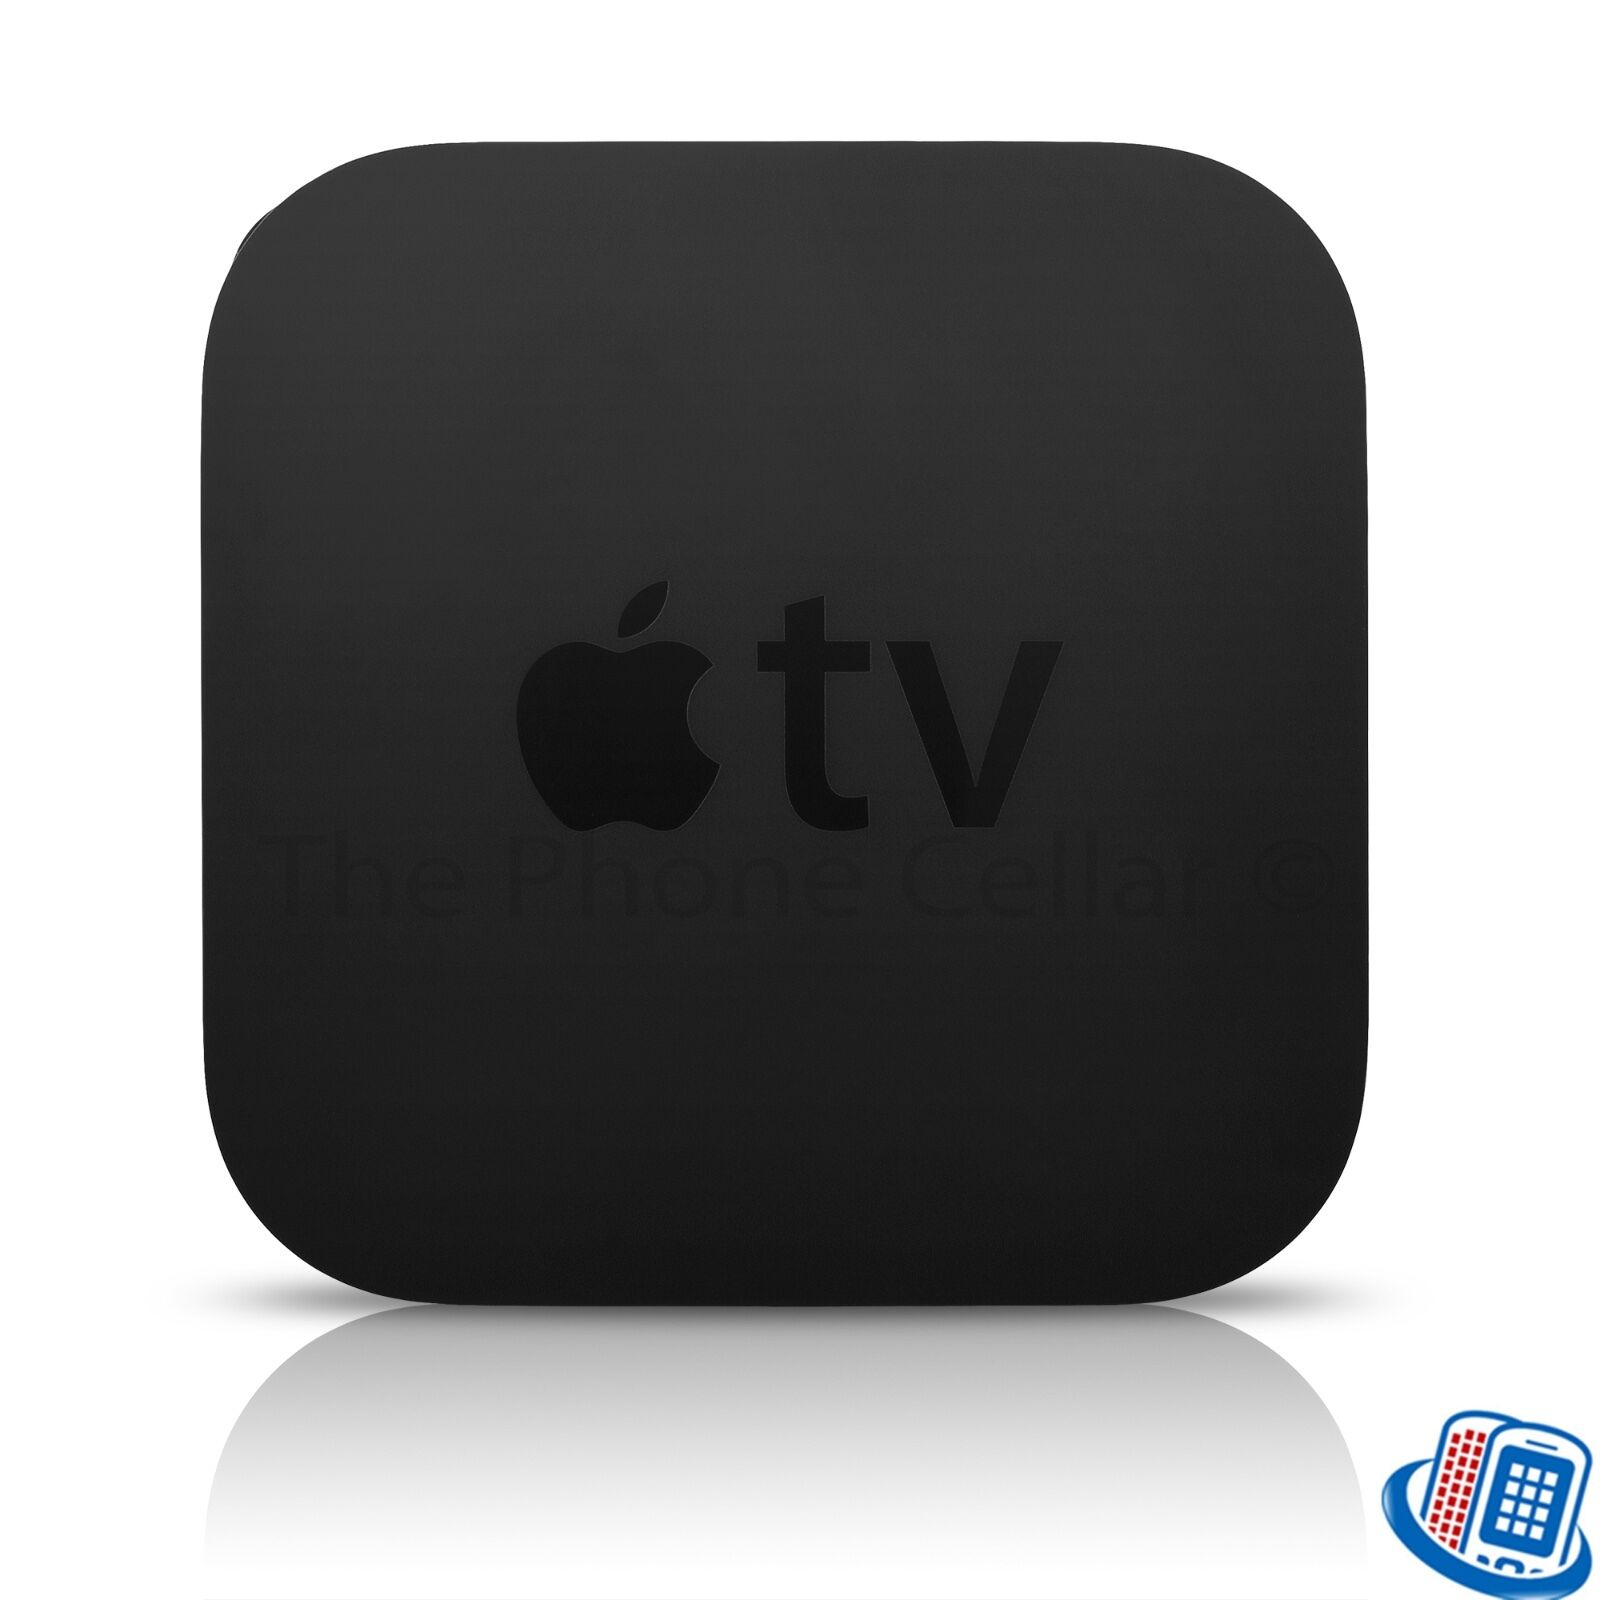 Details about Apple TV 4th Gen 32GB 1080p HD Streaming Media Player Netflix  iTunes MGY52LL/A